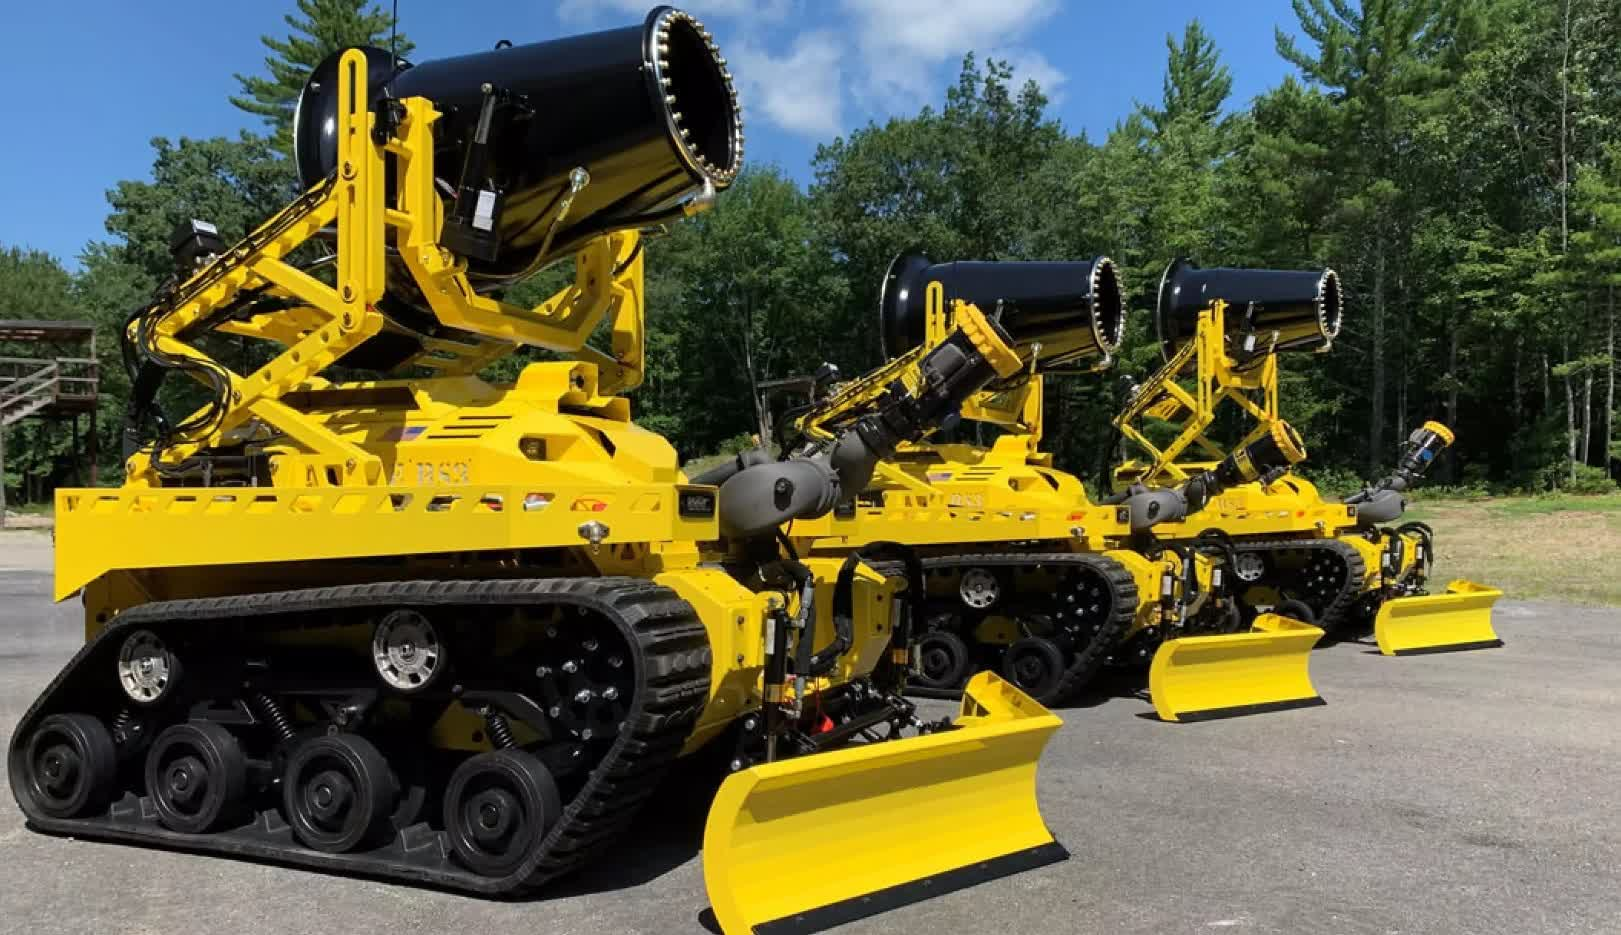 The United States gets its first firefighting robot